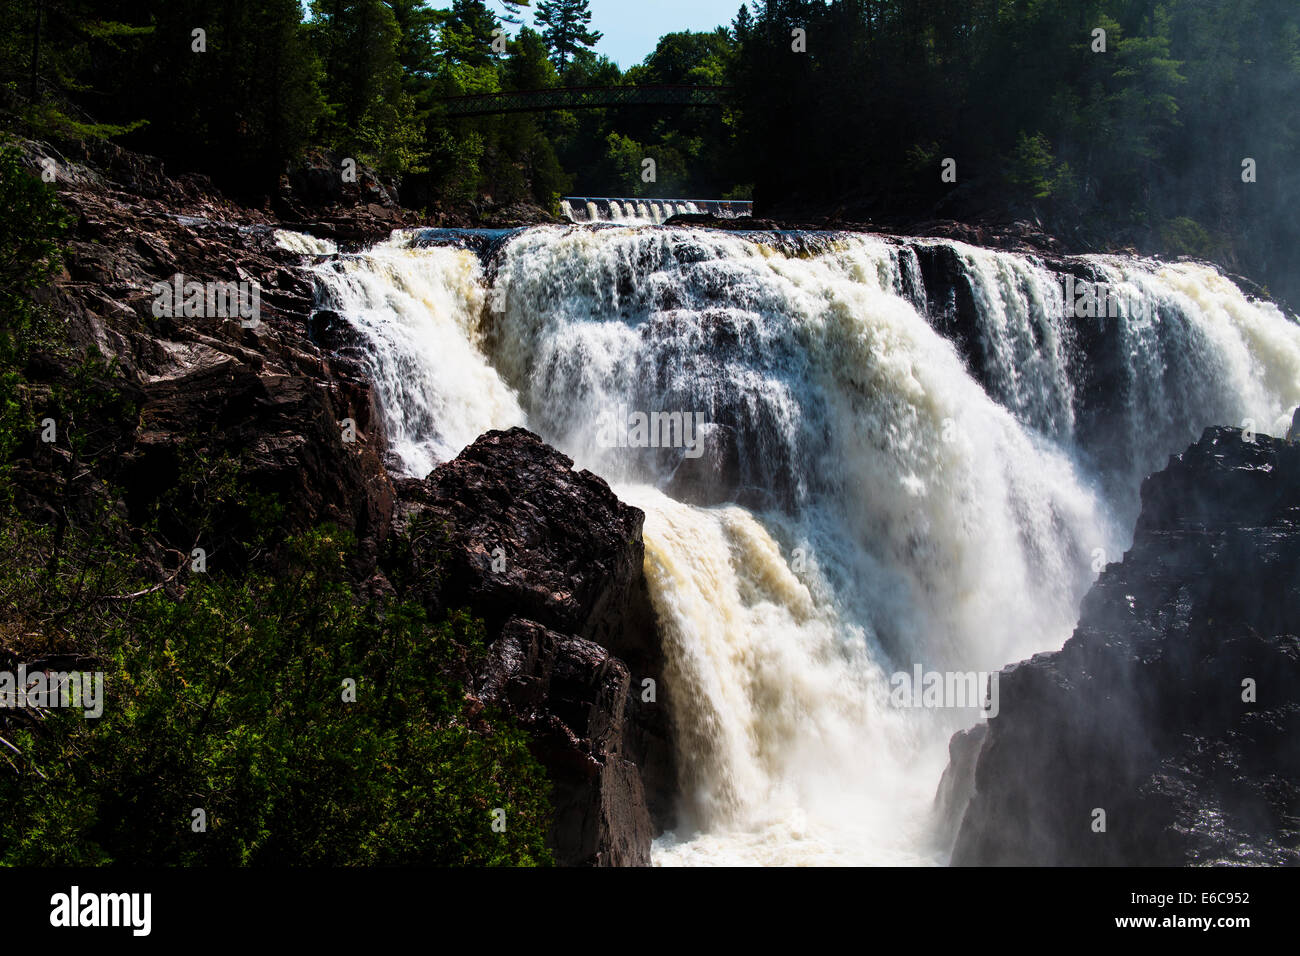 Fort-Coulonge Quebec Canada waterfalls at Fort Coulonge - Stock Image